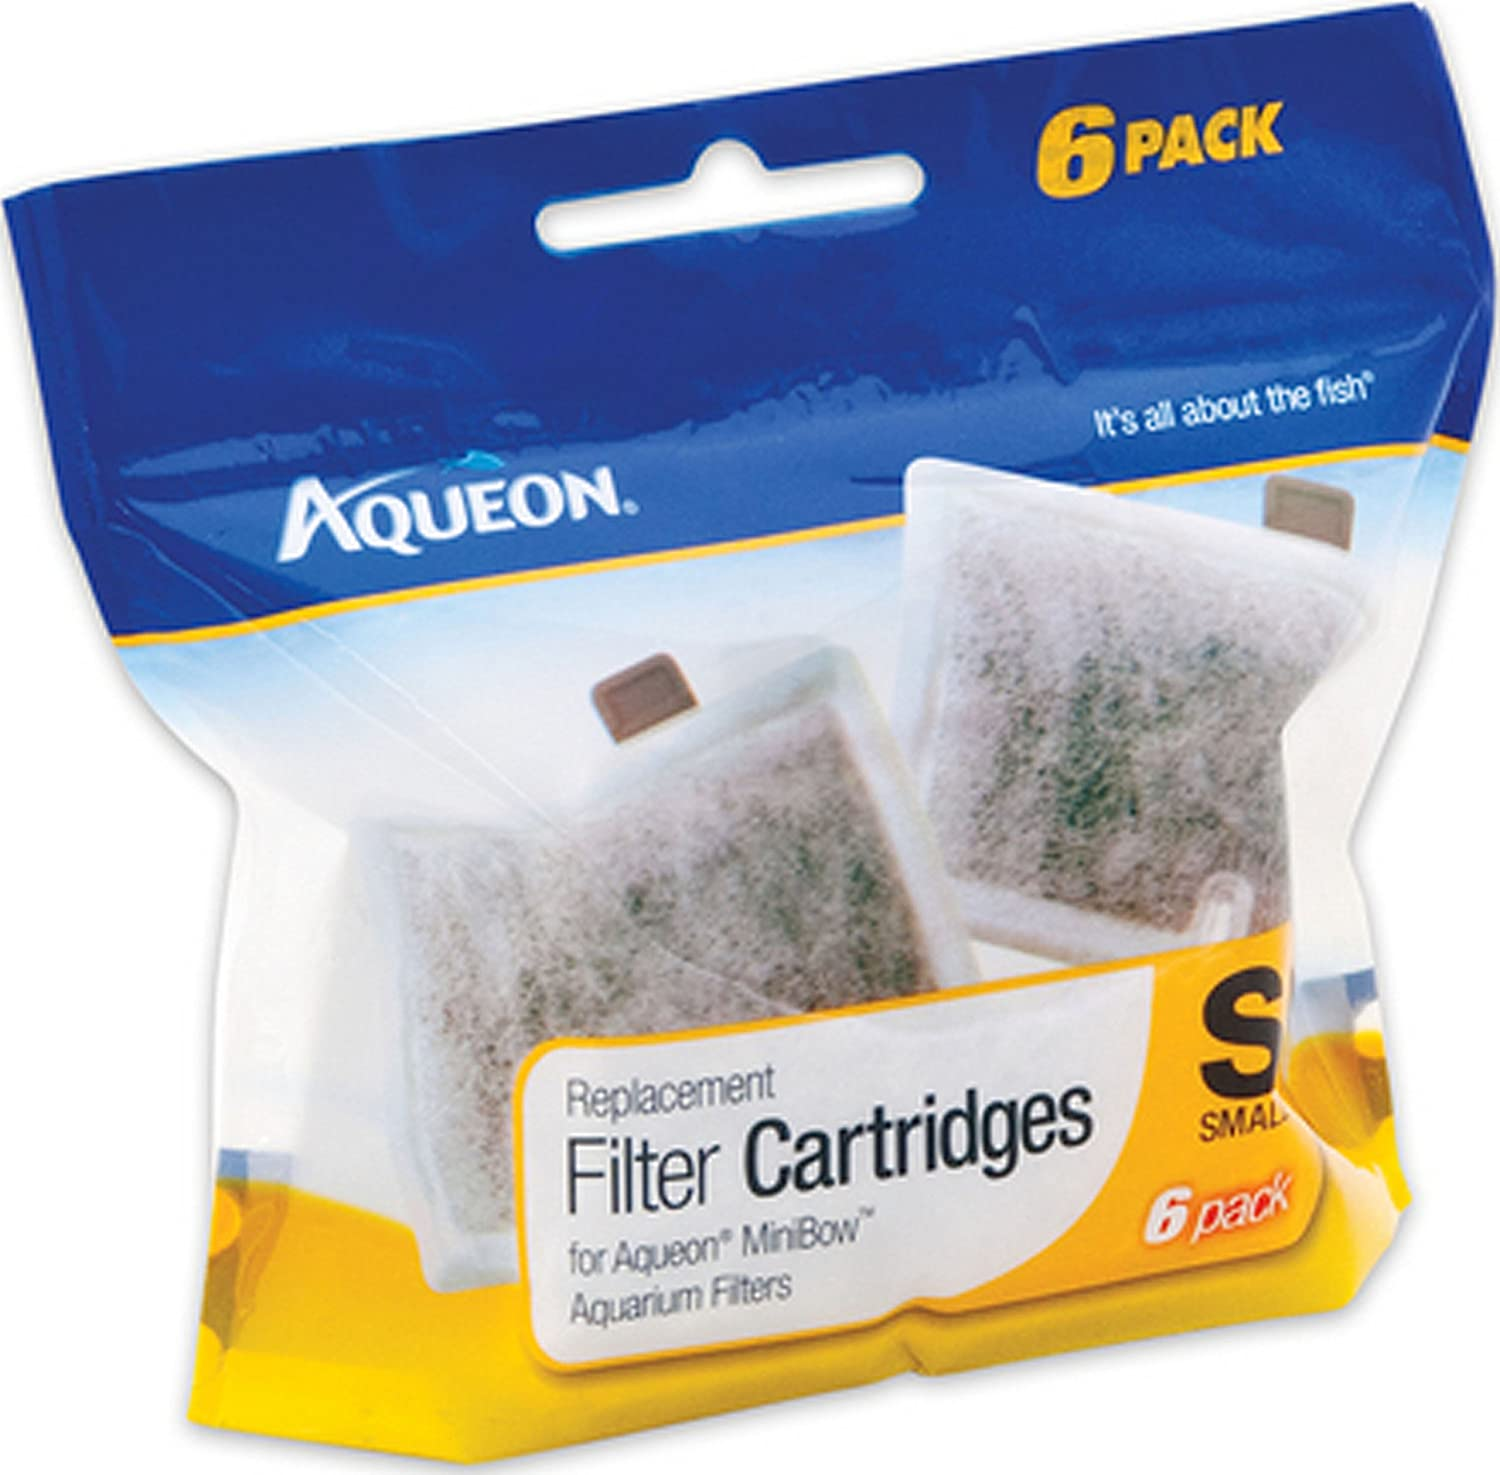 Aqueon Products-supplies-Aqueon Filter Cartridge Small/6 Pk